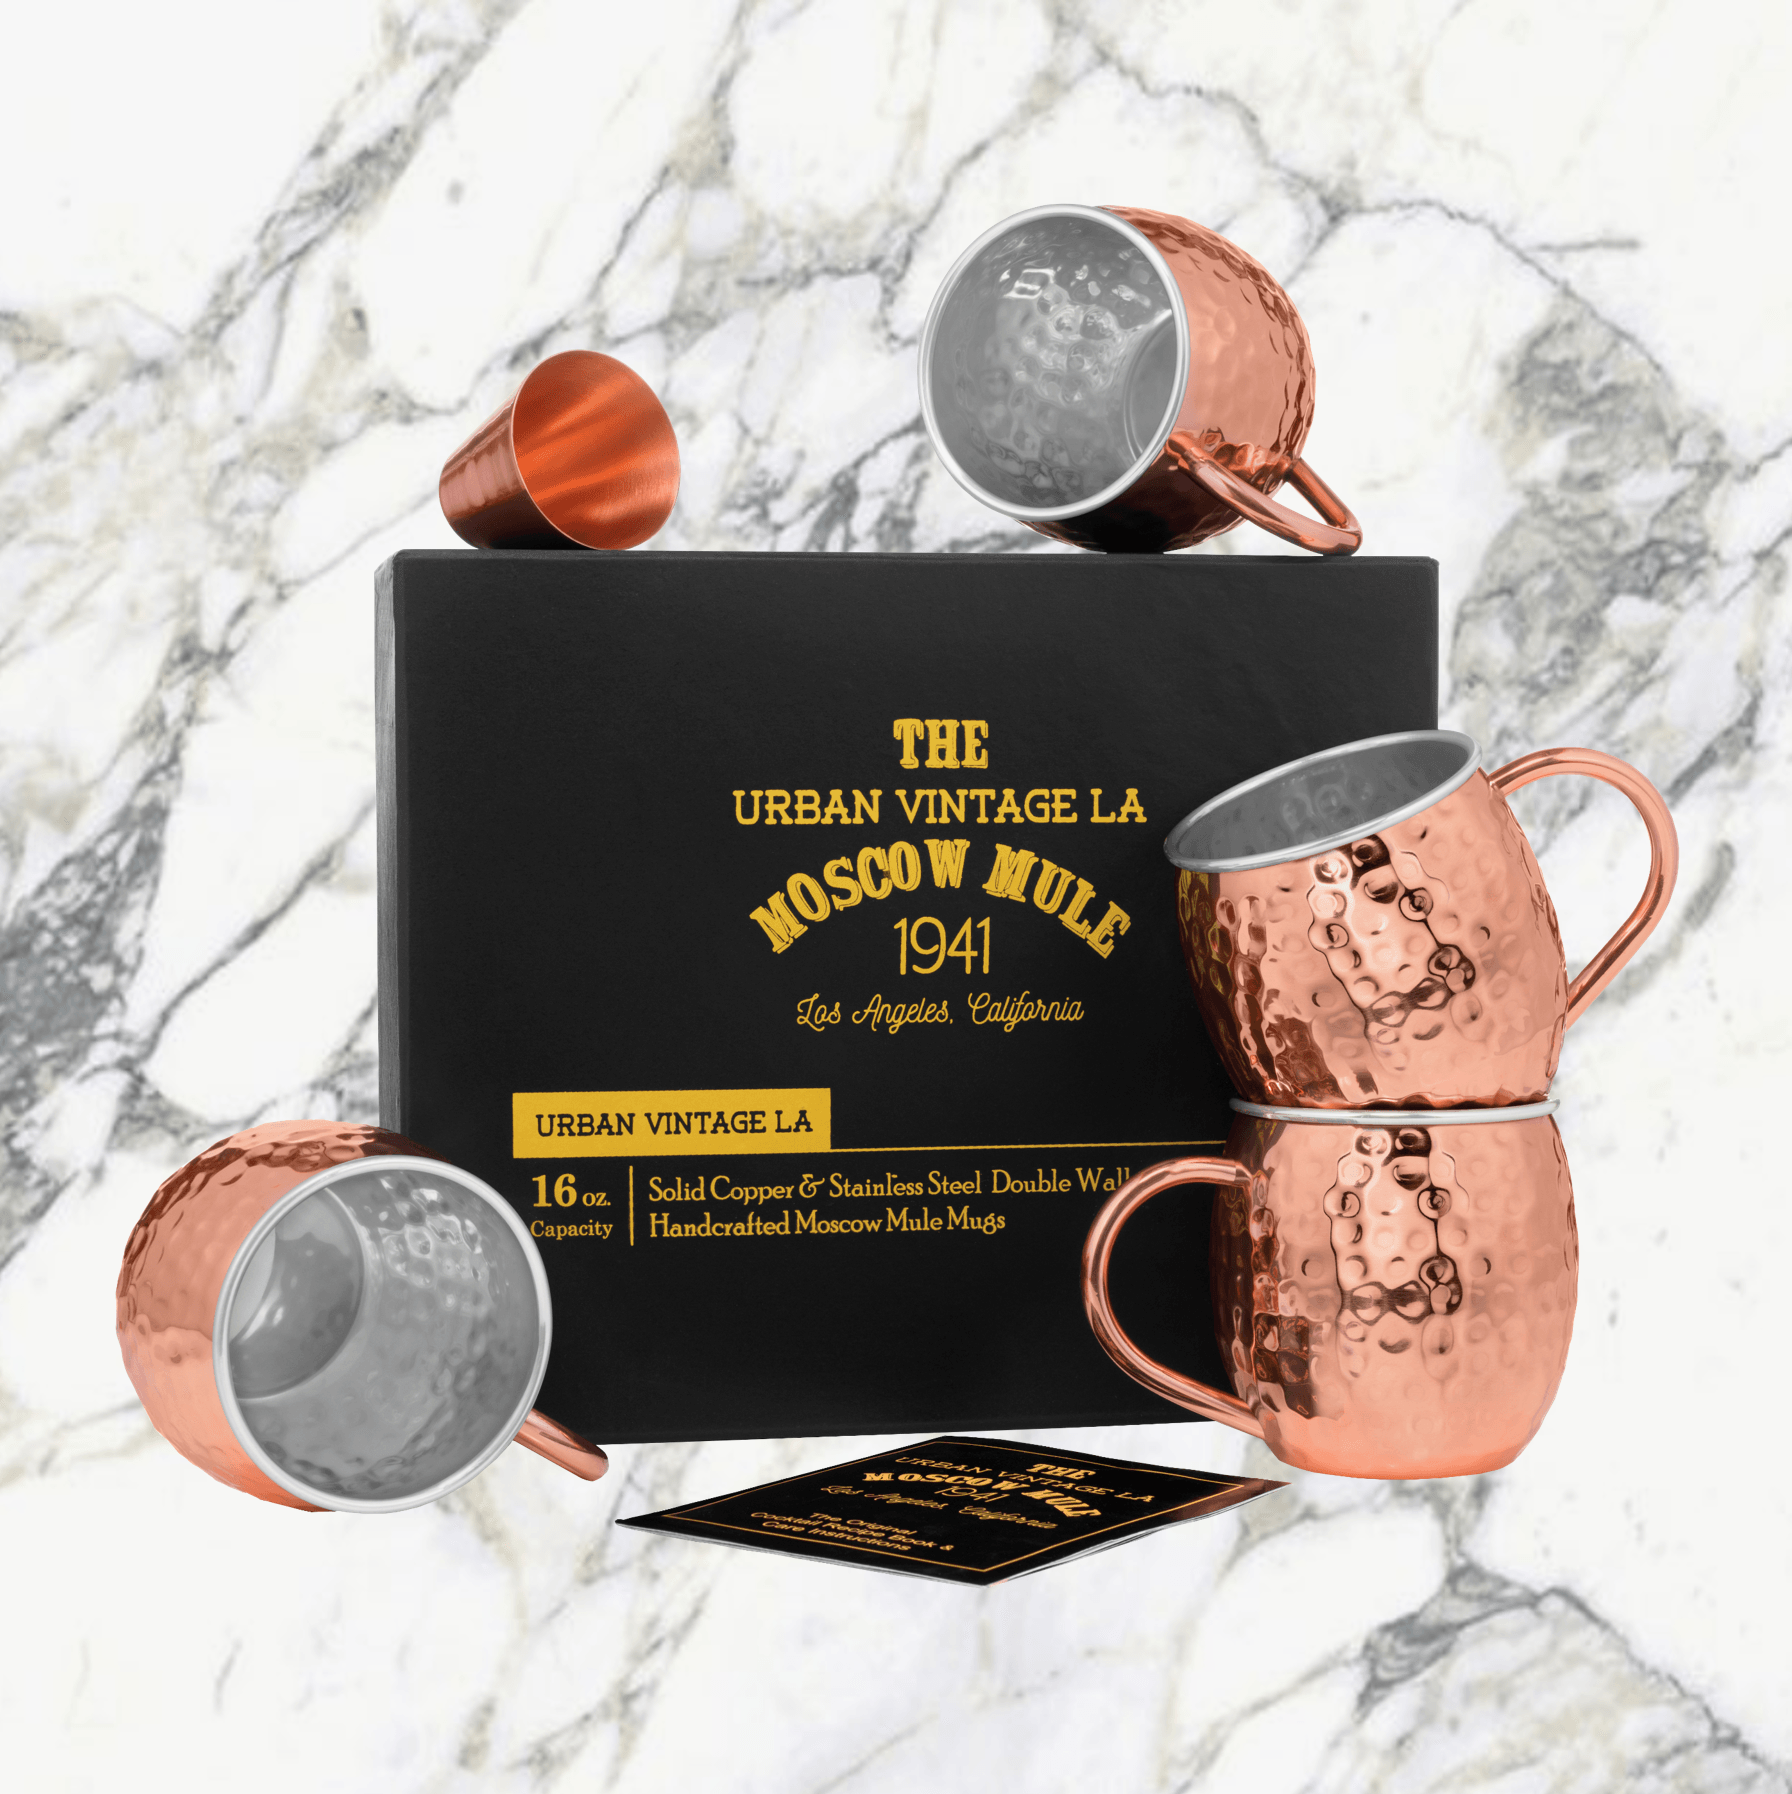 Urban Vintage LA Moscow Mule Copper Mugs Lined With Stainless-Steel Wall and Outer Solid Copper Wall And Bonus Shot Glass and Recipe Book in Black Gift Box